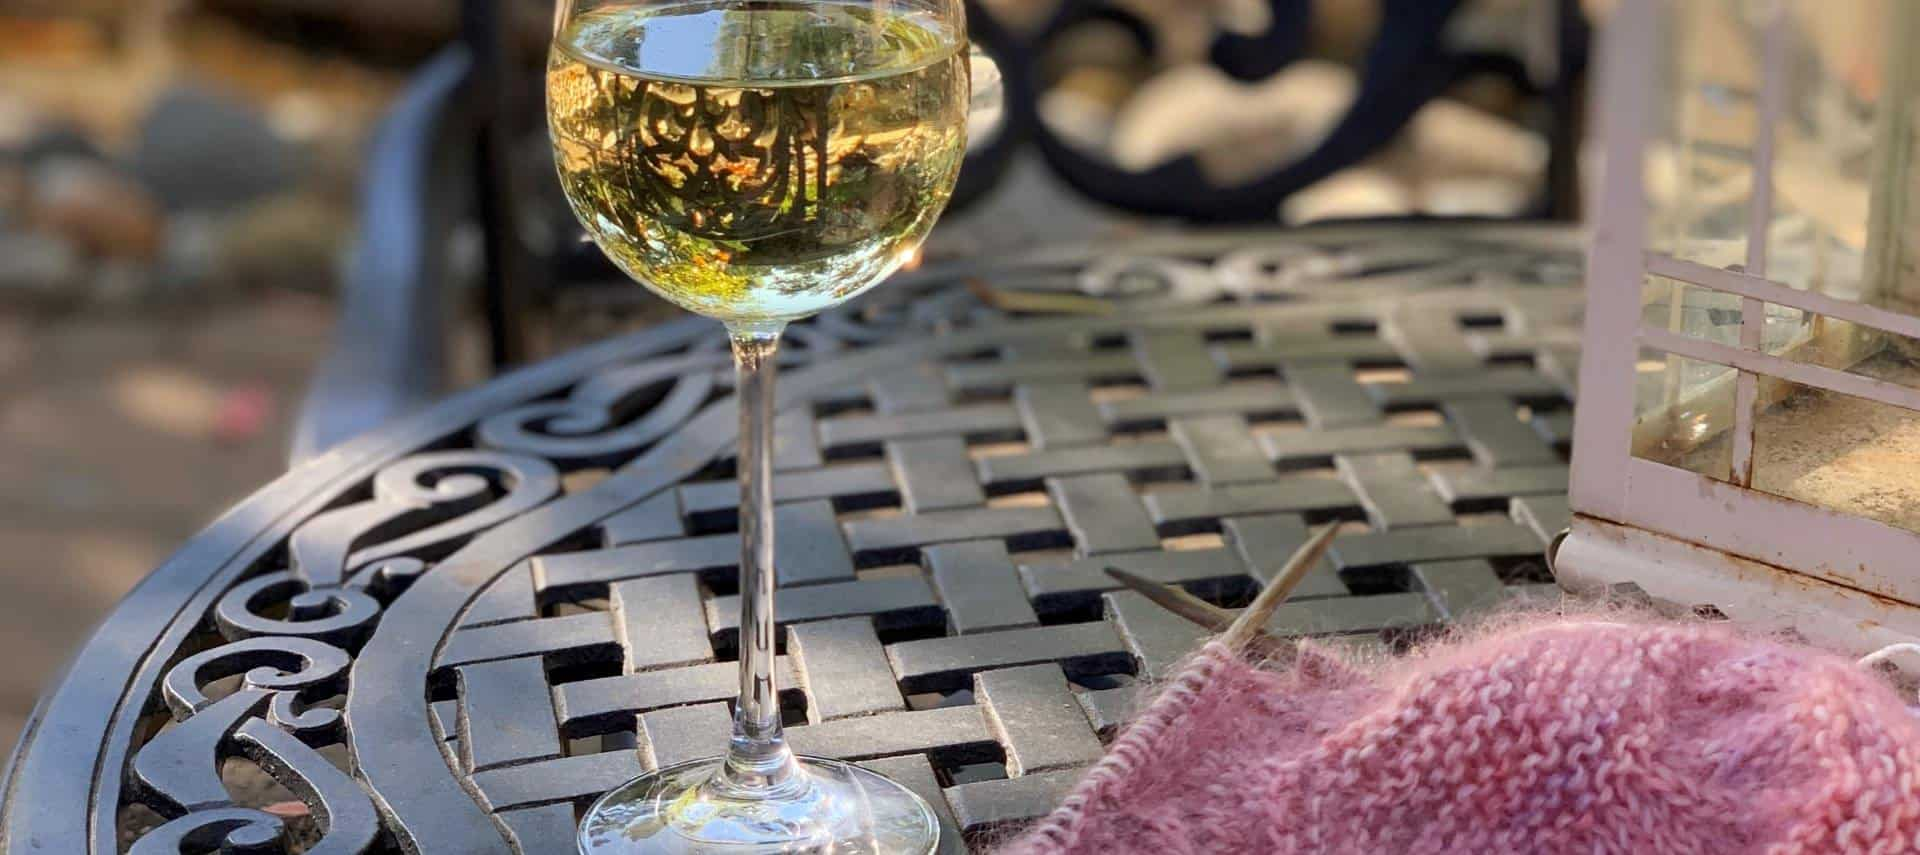 Wine glass with white wine sitting on rod iron patio table next to knitting needles and knitted pink scarf